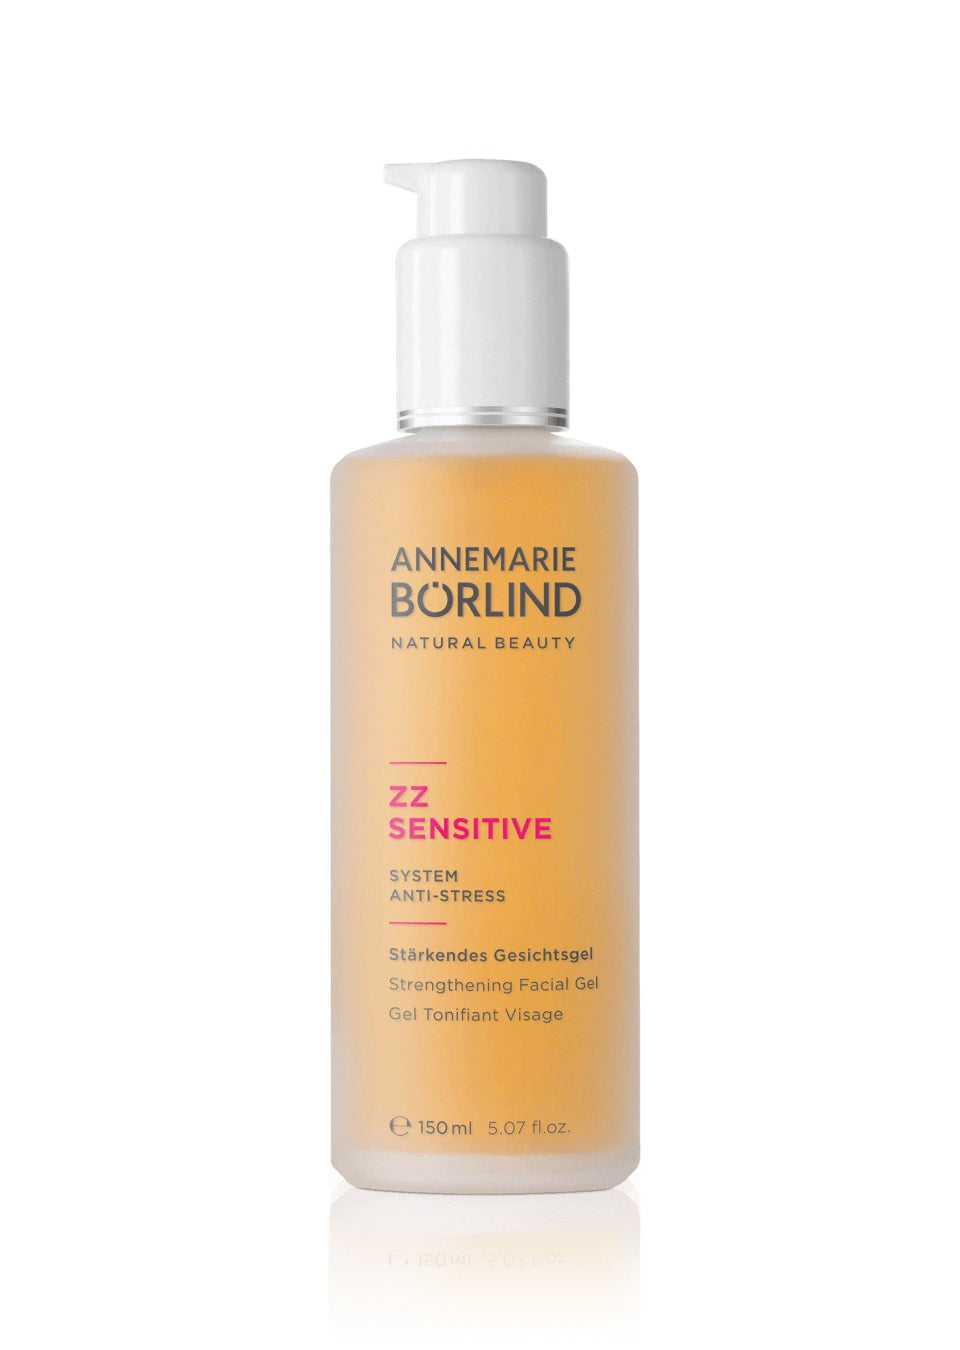 Personal Care - Annemarie Borlind ZZ Sensitive Strengthening Facial Gel, 150mL